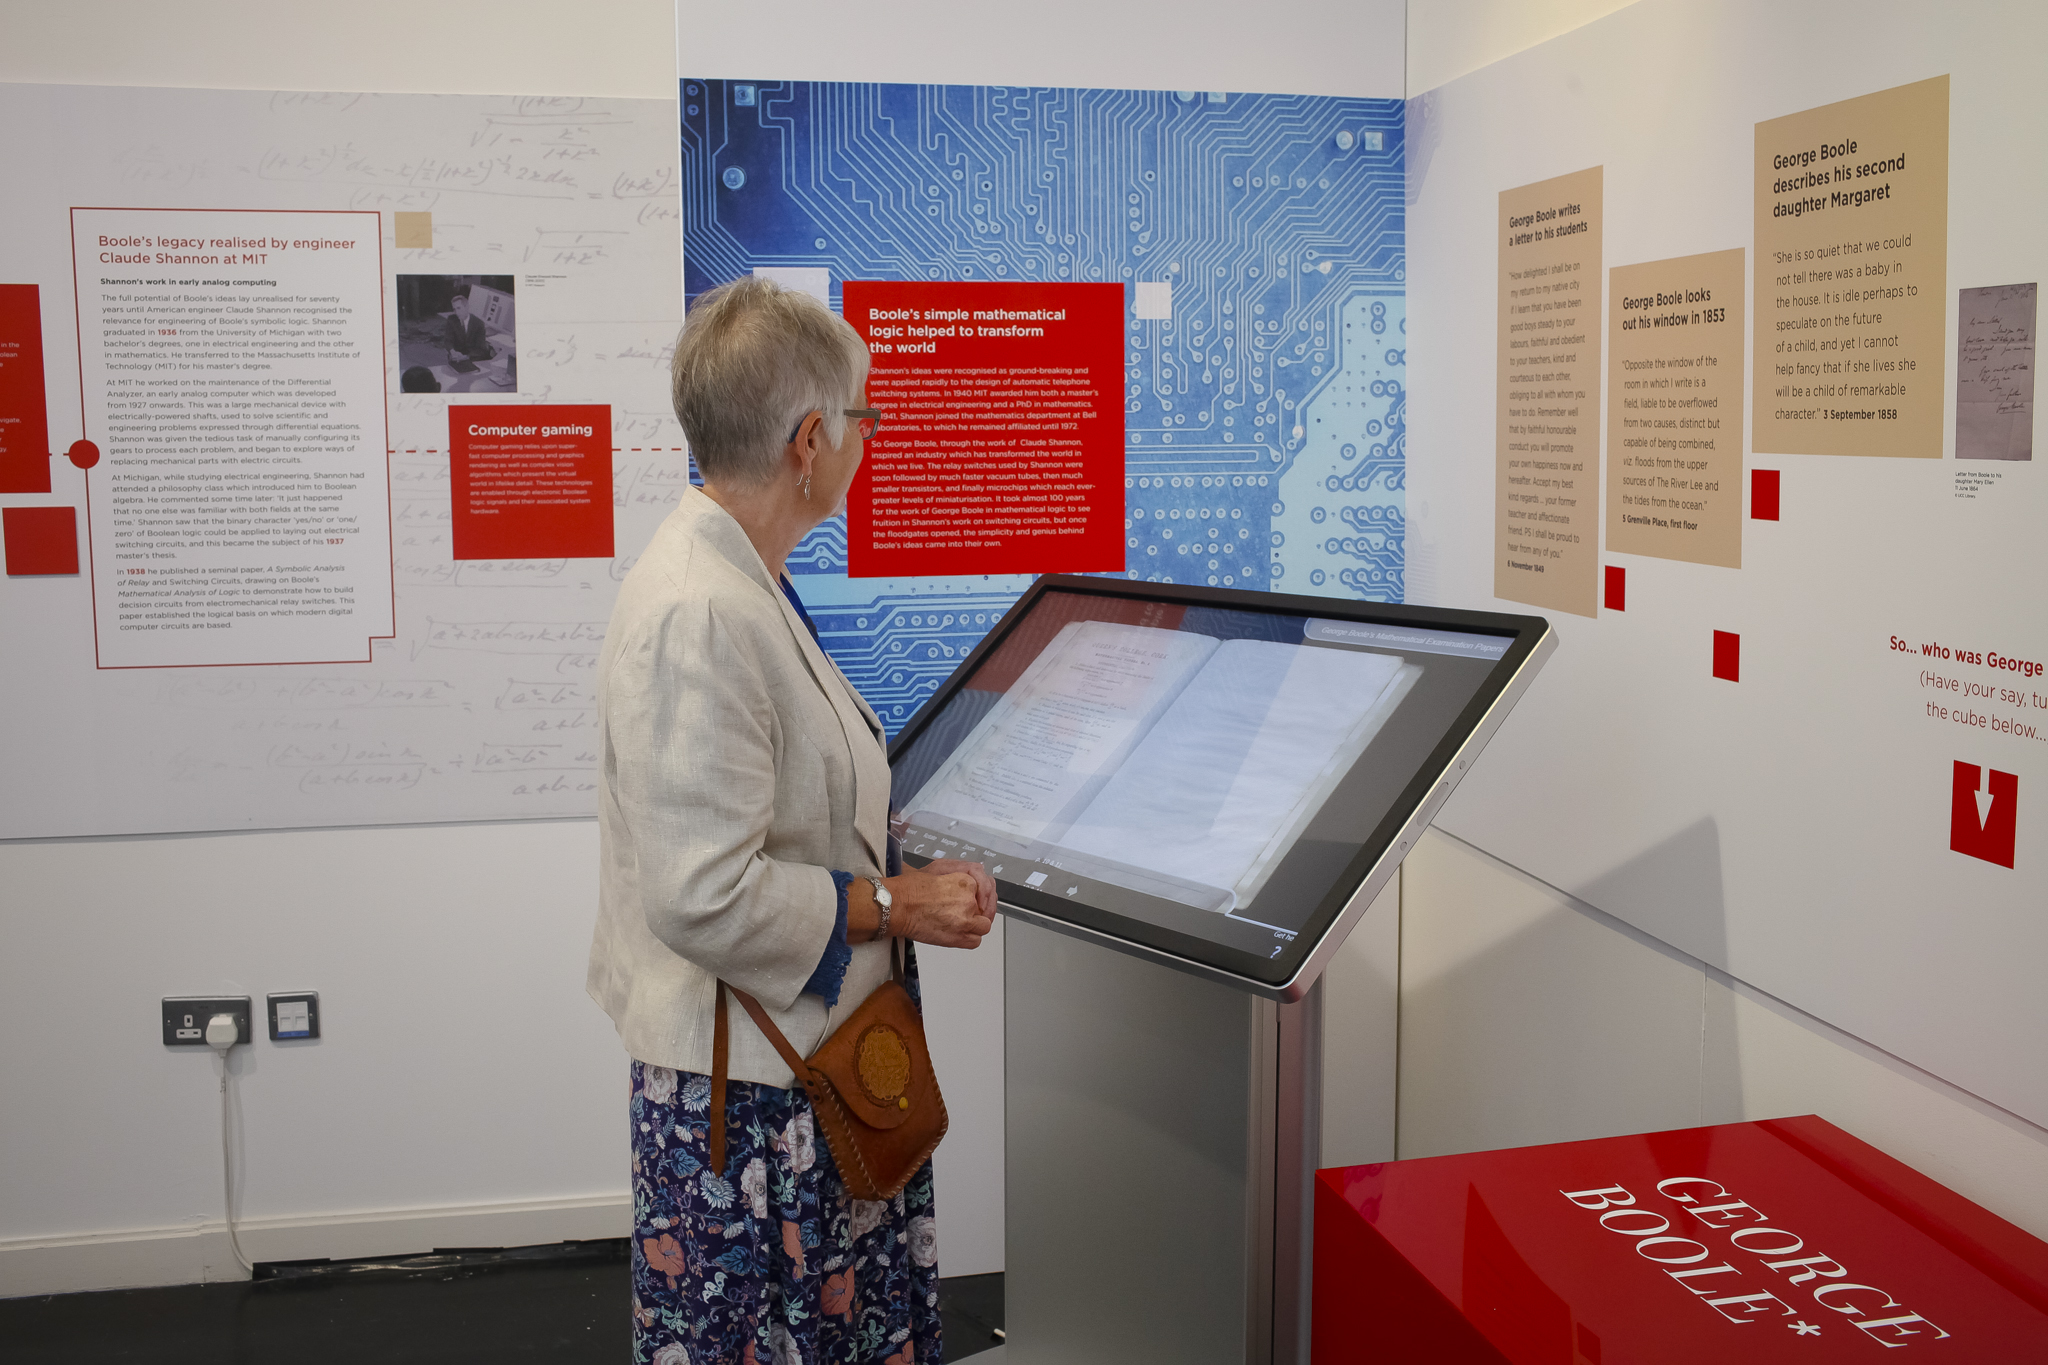 An interactive, engaging digital exhibition in the Boole library highlighted his contributions to modern digital technology.